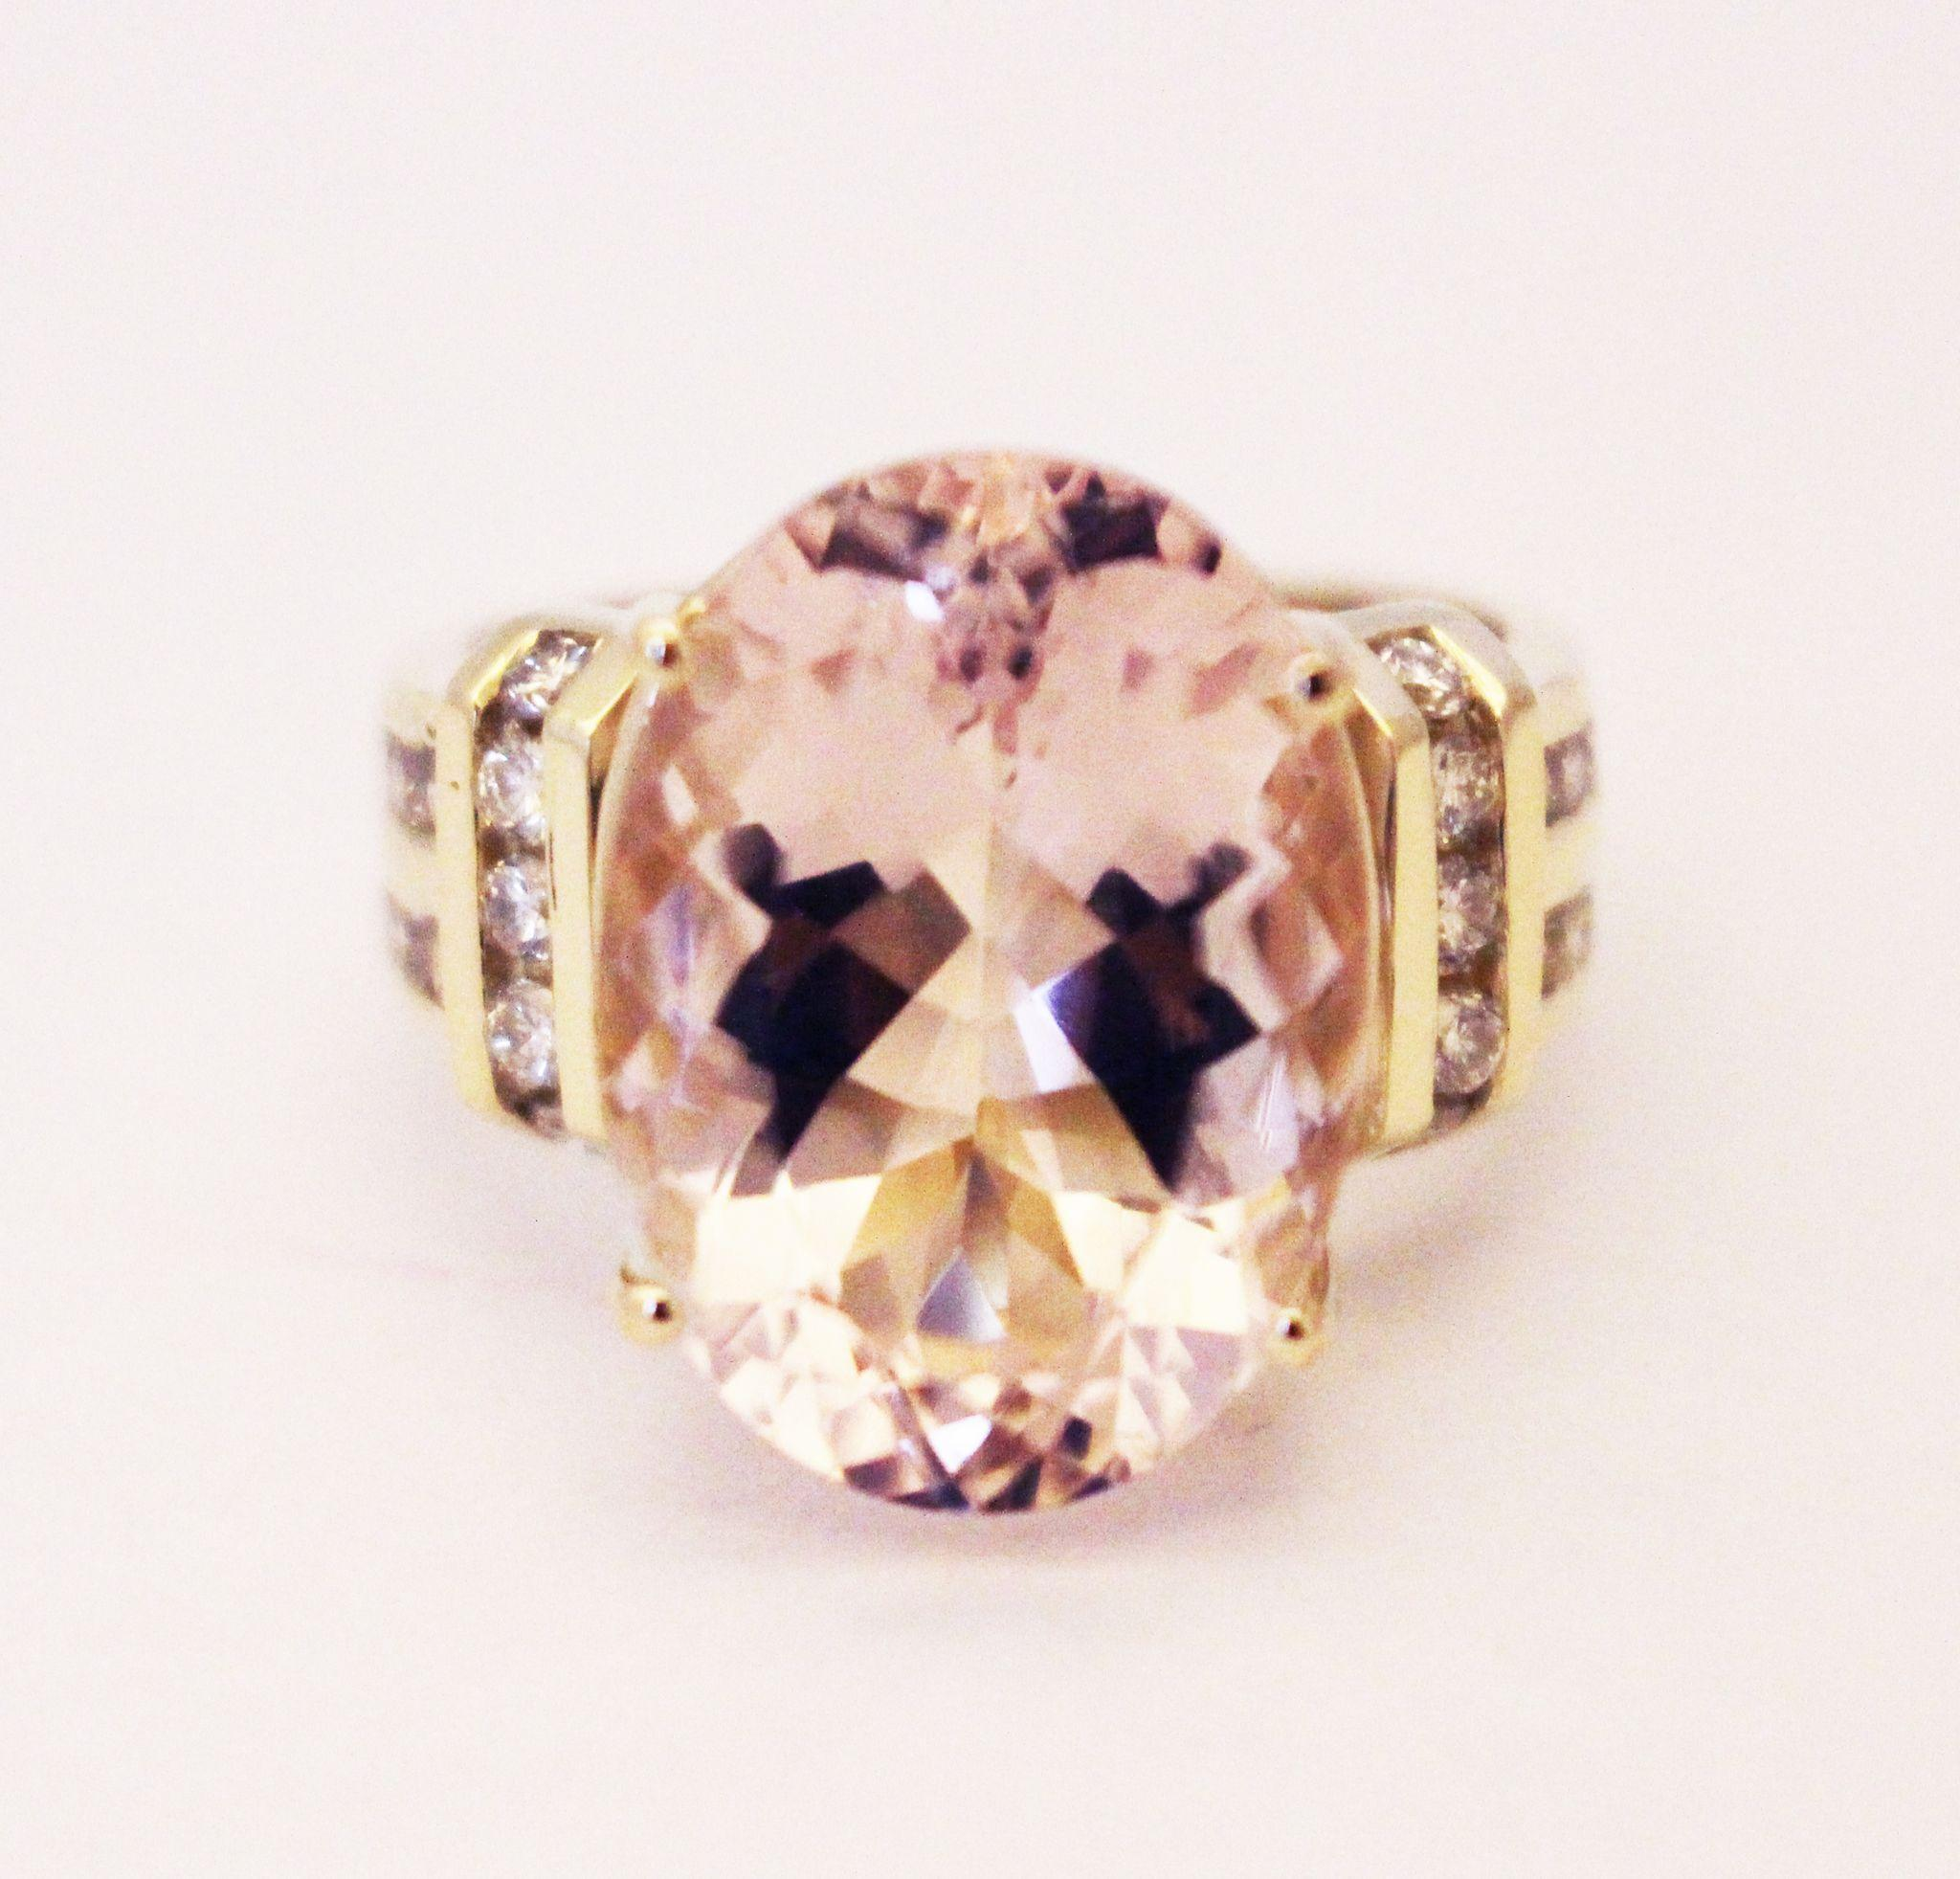 13 ct natural morganite diamonds ring 14kt yellow gold from samantha cham nyc on ruby lane. Black Bedroom Furniture Sets. Home Design Ideas